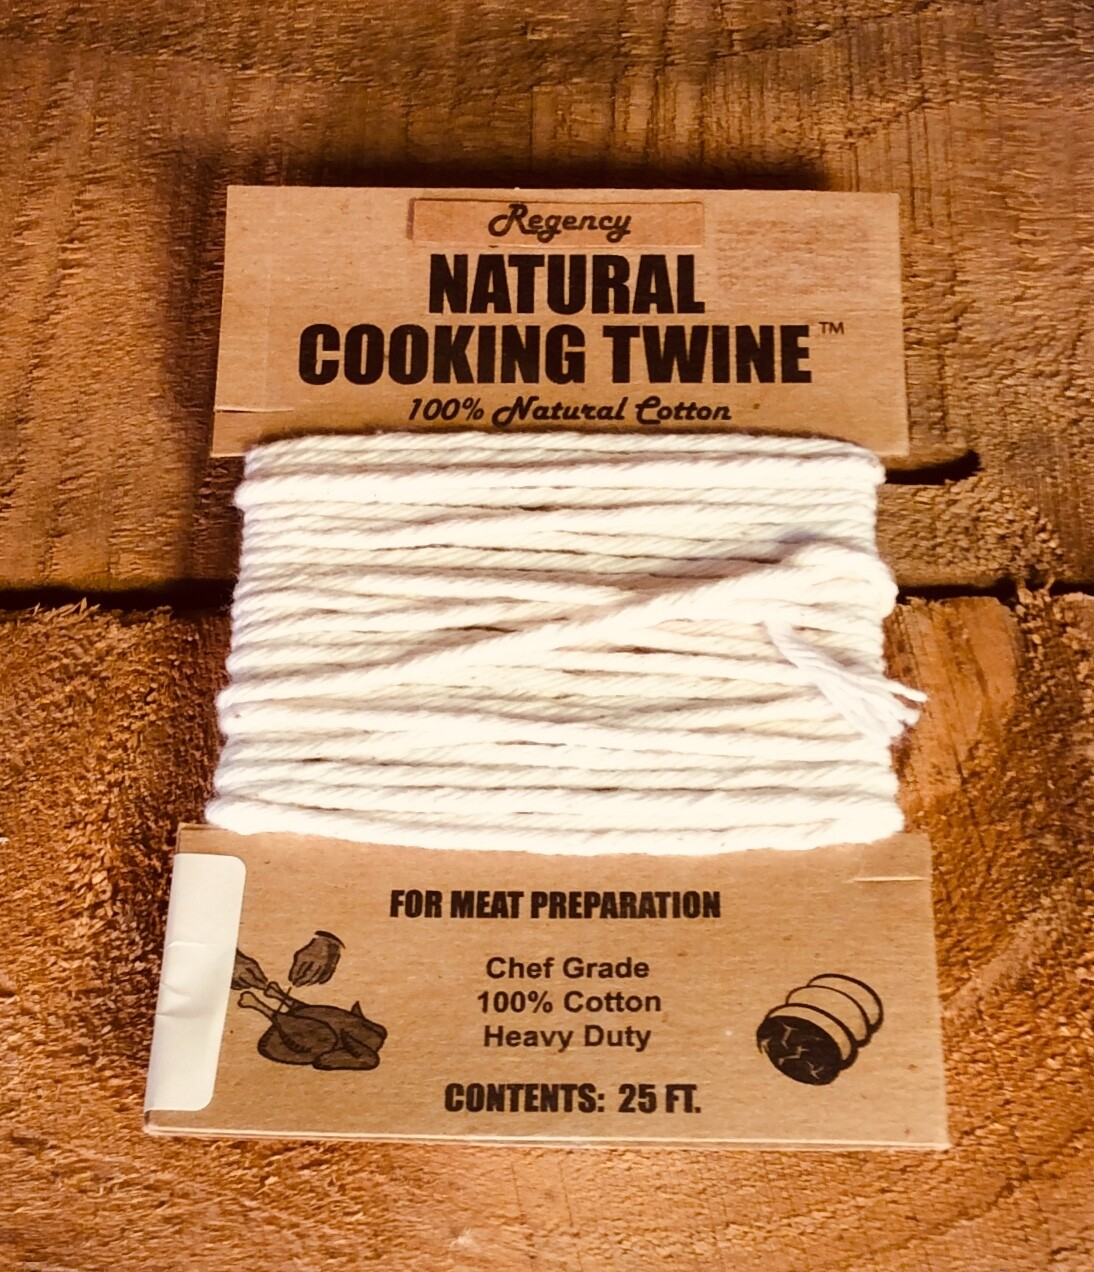 twine, cooking; each